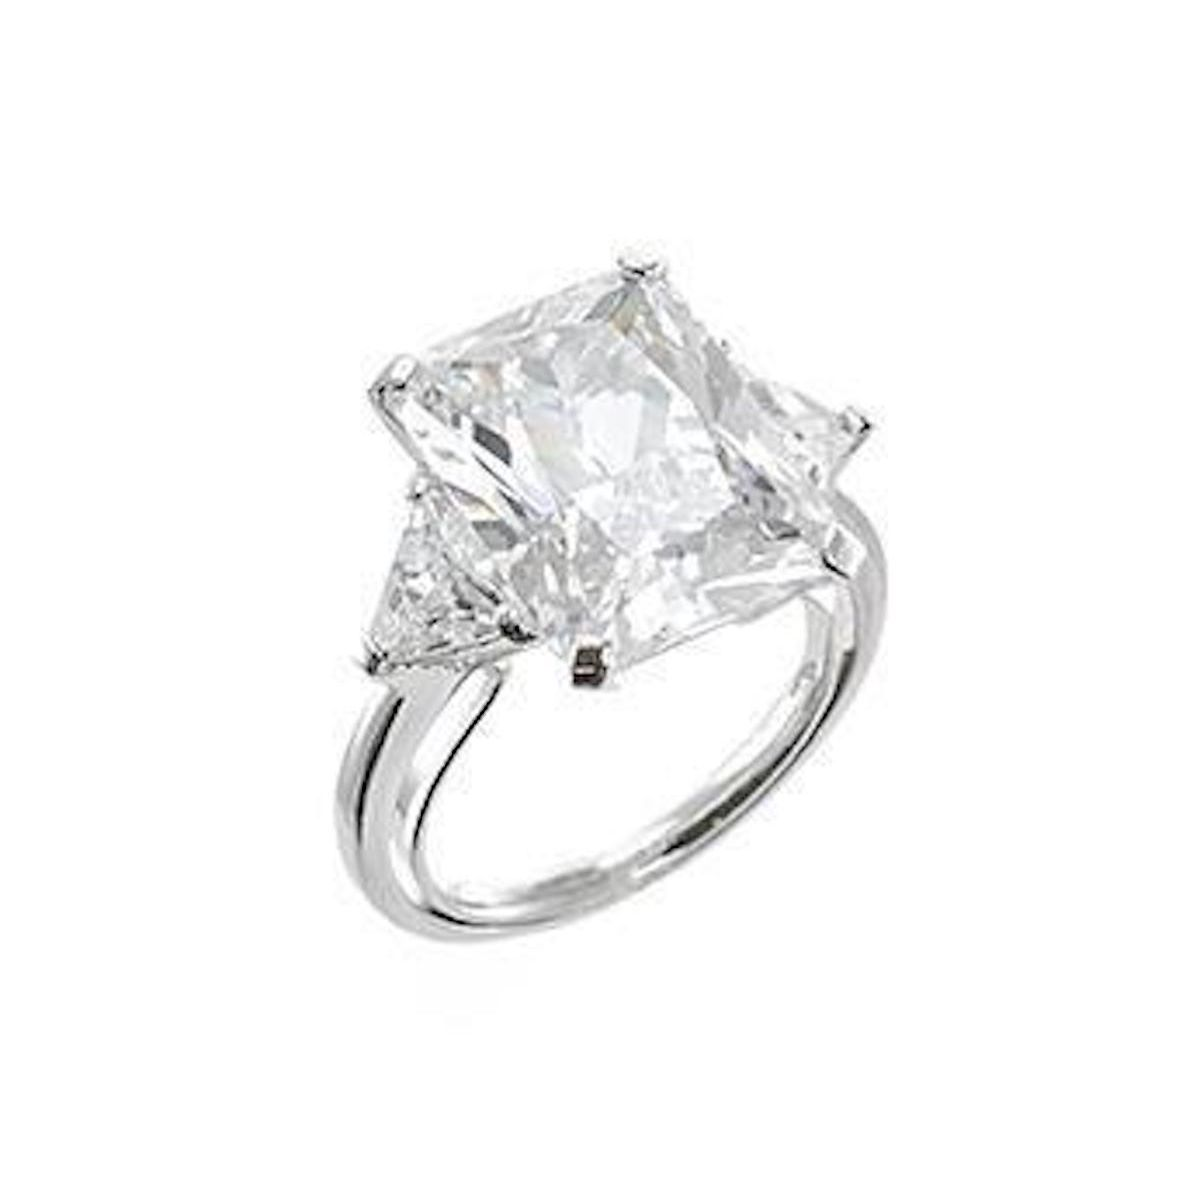 91 Gorgeous Engagement Rings Under $5,000